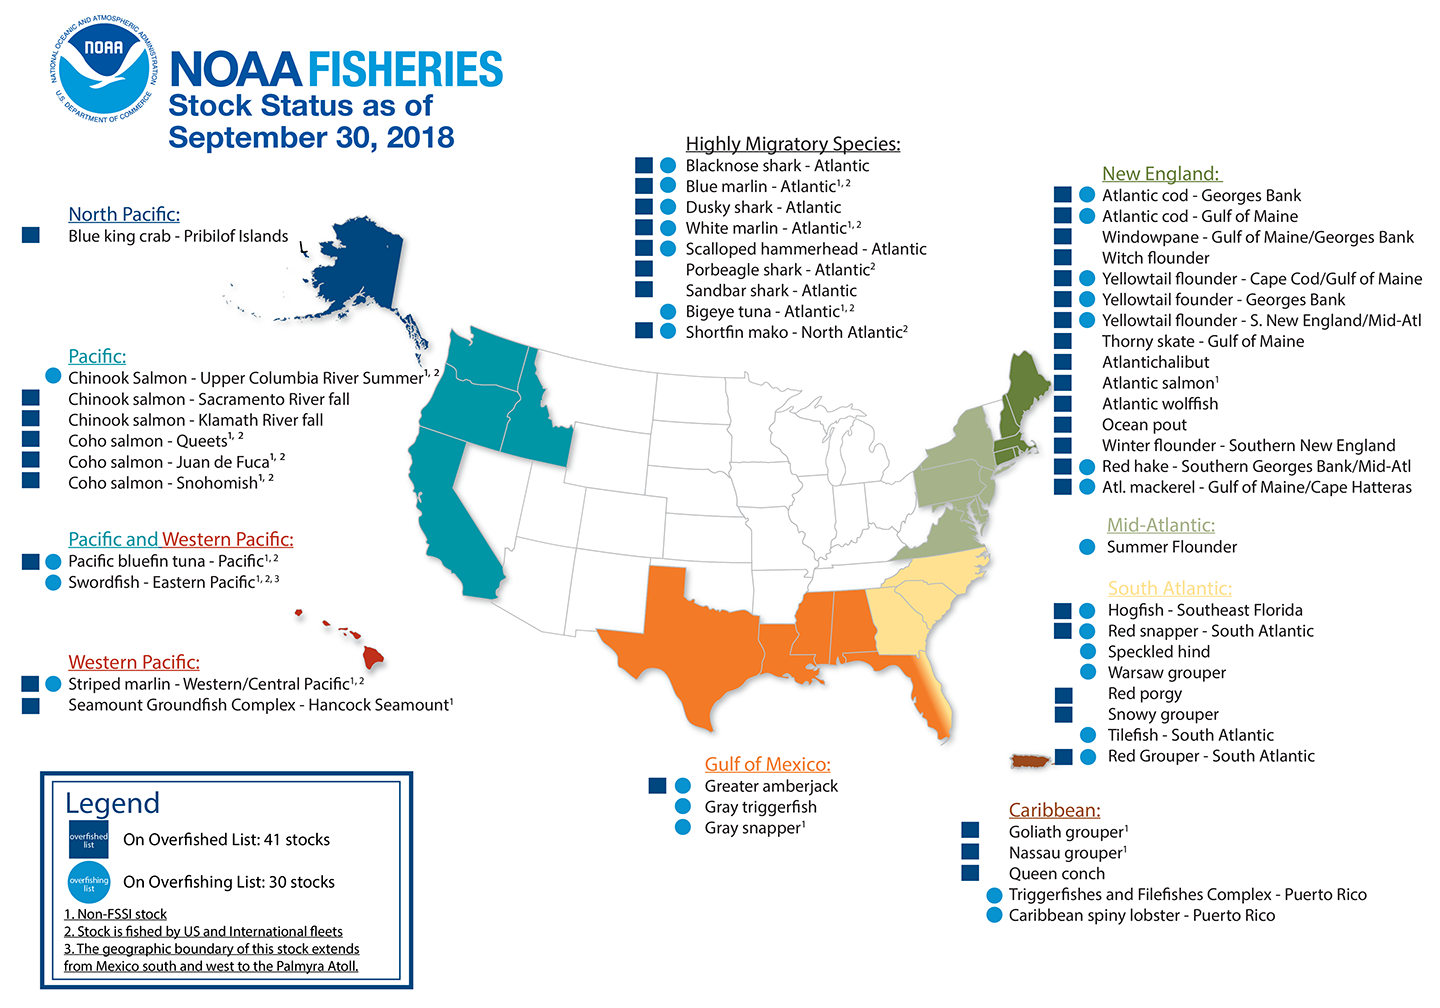 A NOAA map detailing the fish which are overfished or undergoing overfishing as of the end of 2018